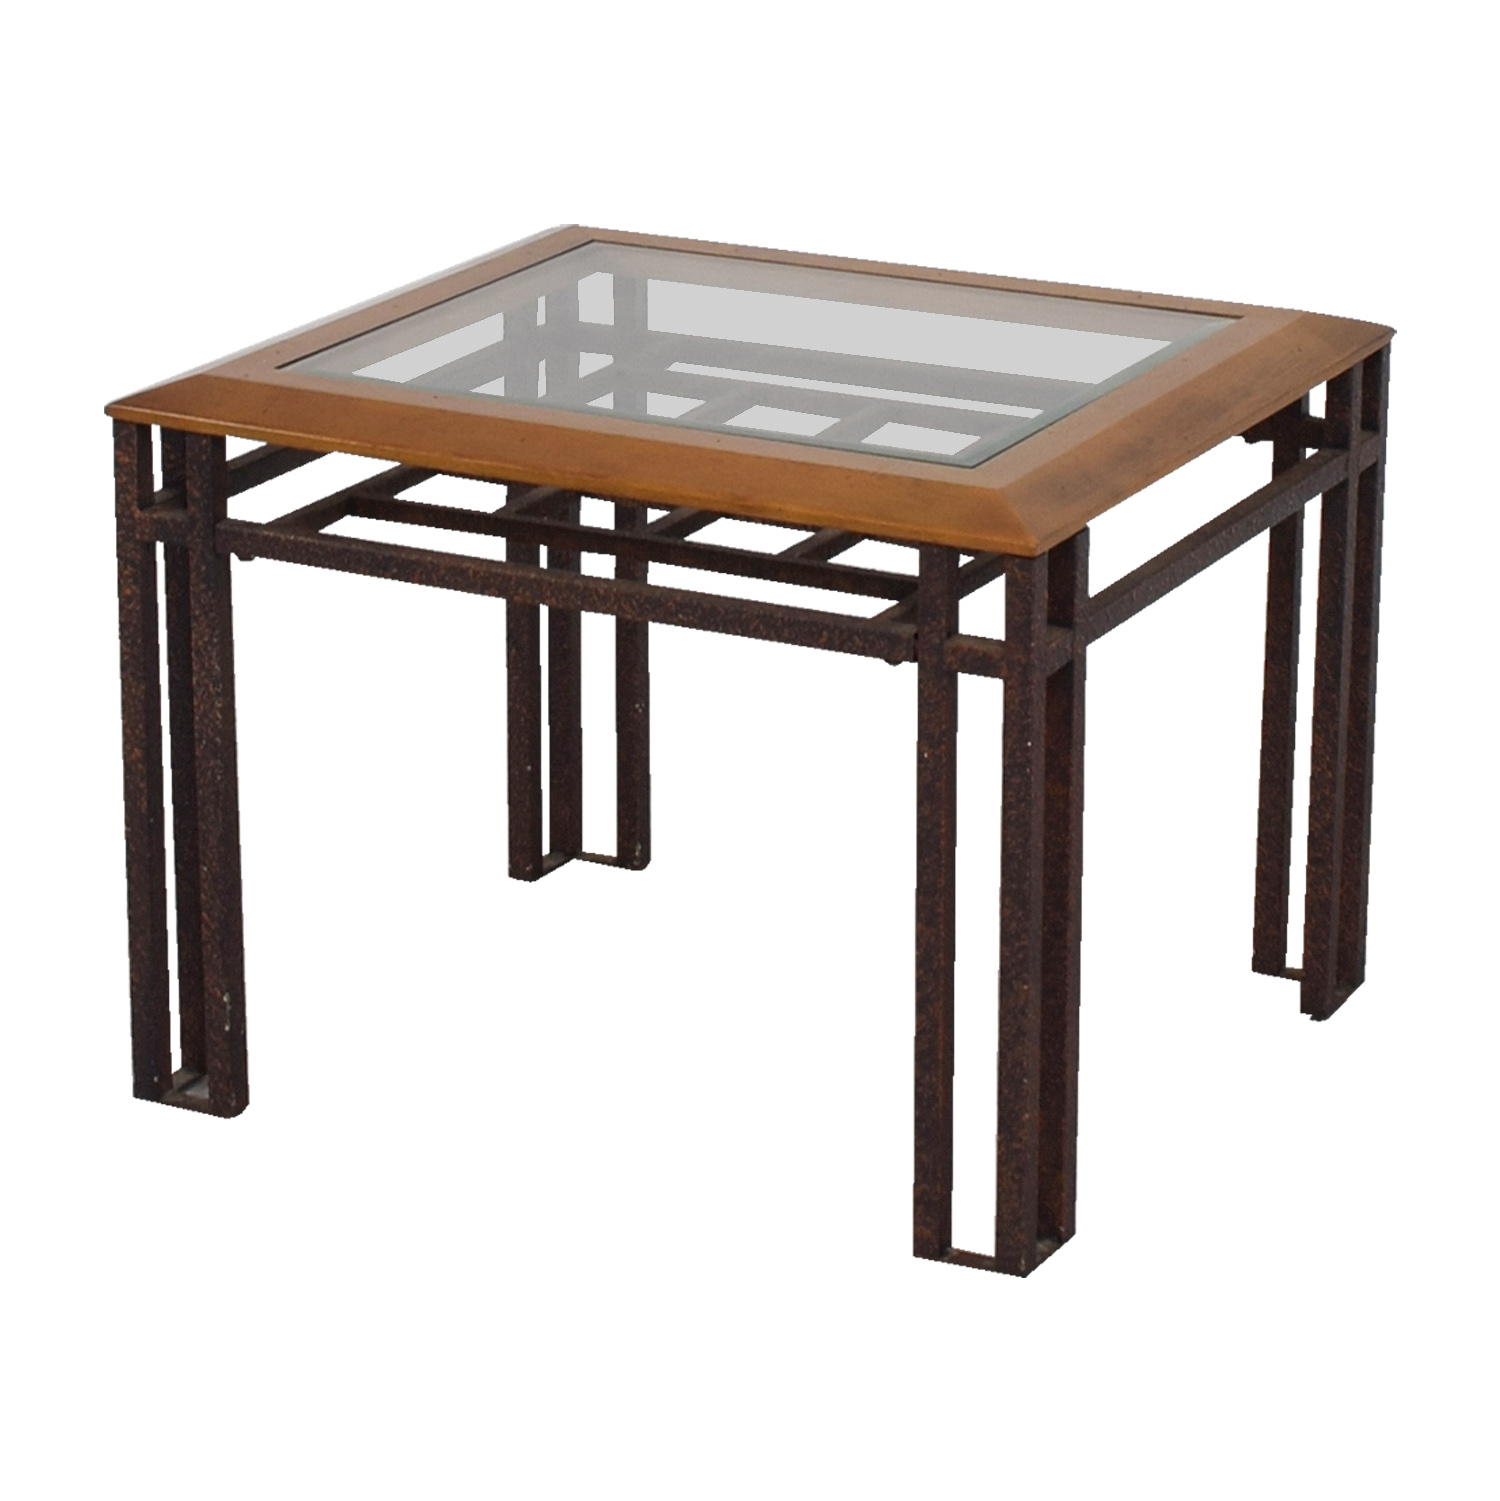 88 off rustic brass wood and glass end table tables. Black Bedroom Furniture Sets. Home Design Ideas